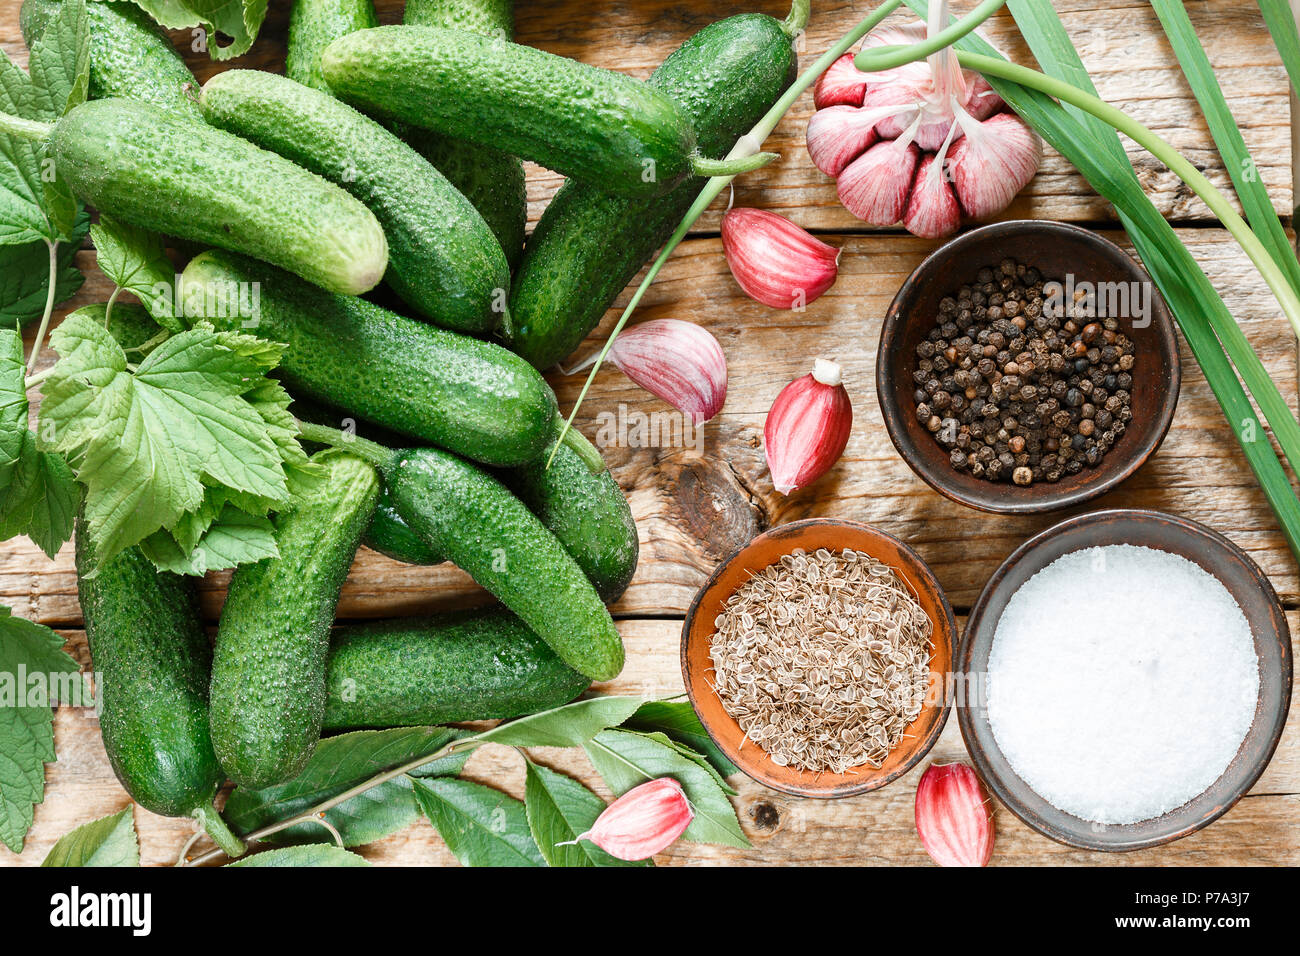 Ingredients for preservation on an old wooden table-cucumbers, garlic, dill seed, pepper, salt, seasonings and spices . Selective focus - Stock Image